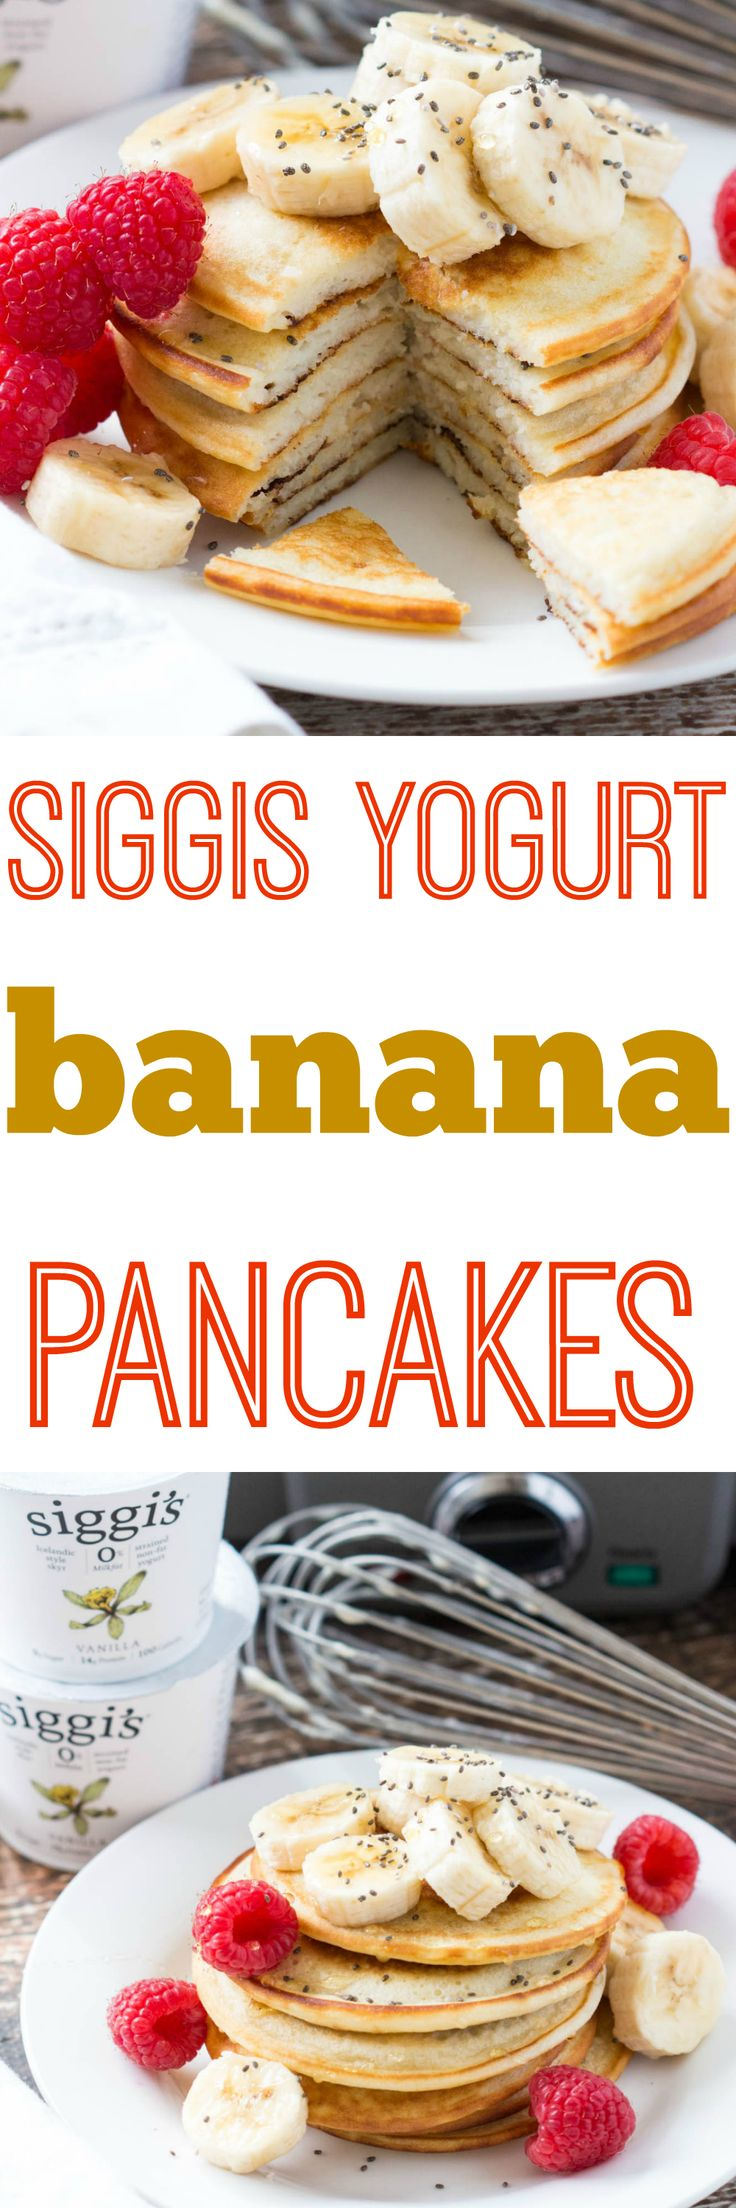 Siggis yogurt banana pancakes hit the spot every time! Fluffy, light, and nutrition packed in each bite. There's no better way to enjoy a weekend breakfast! |Krollskorner.com